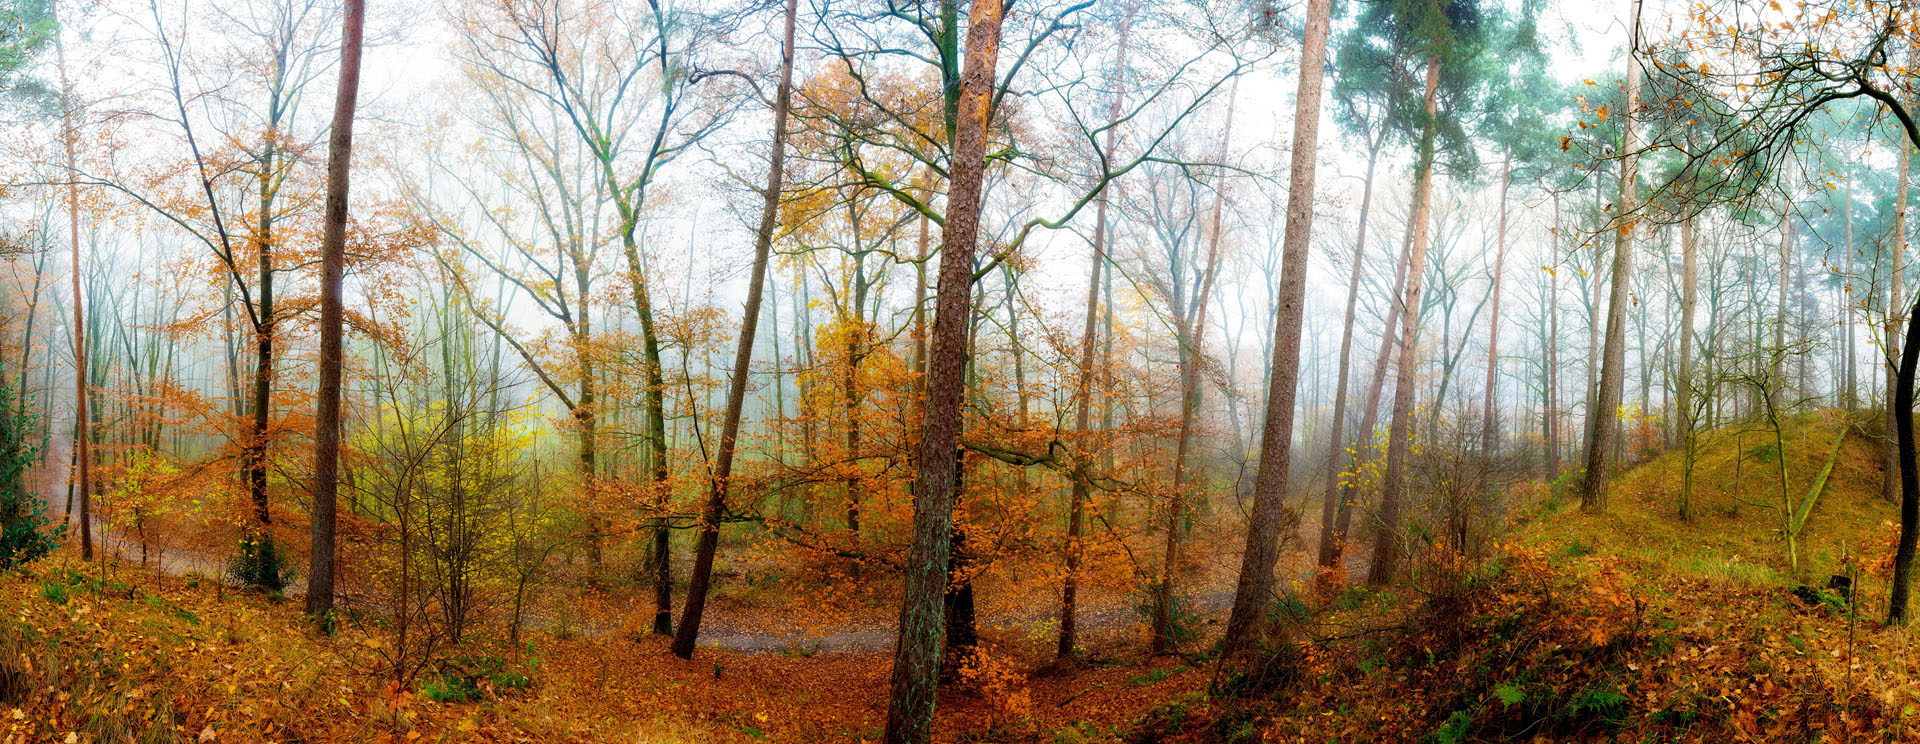 Tapete Waldpanorama Herbst